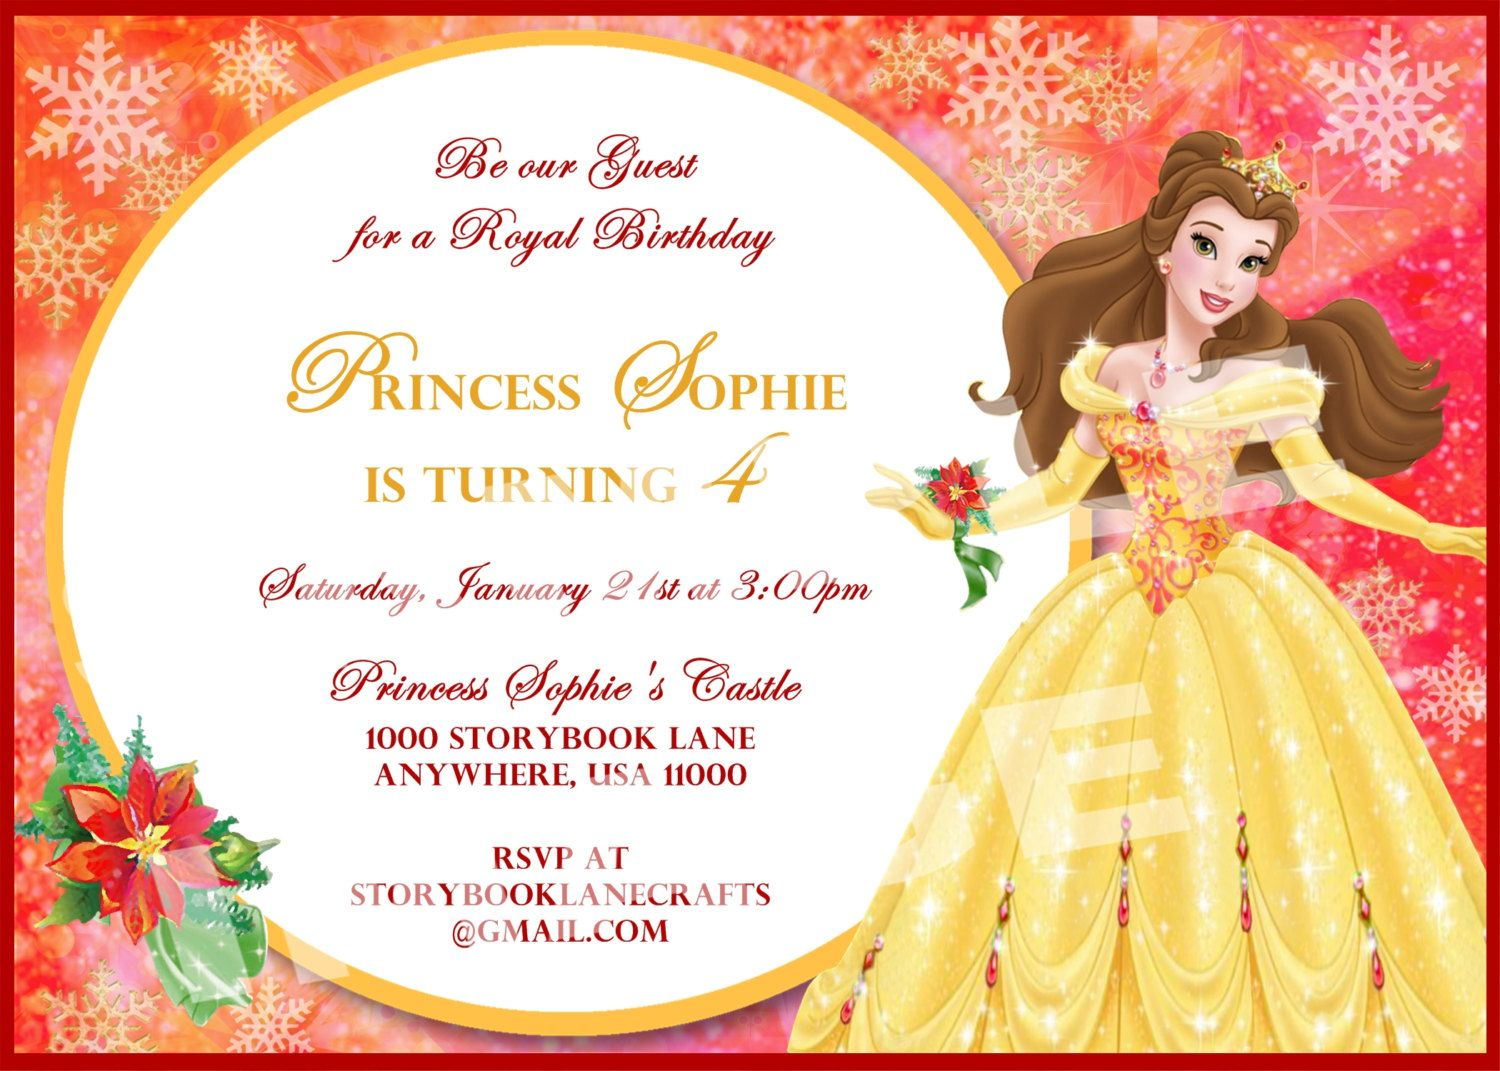 Beauty and the beast invitation belle invitation disney princess beauty and the beast invitation belle invitation disney princess christmas holiday birthday party printable invite 500 via etsy filmwisefo